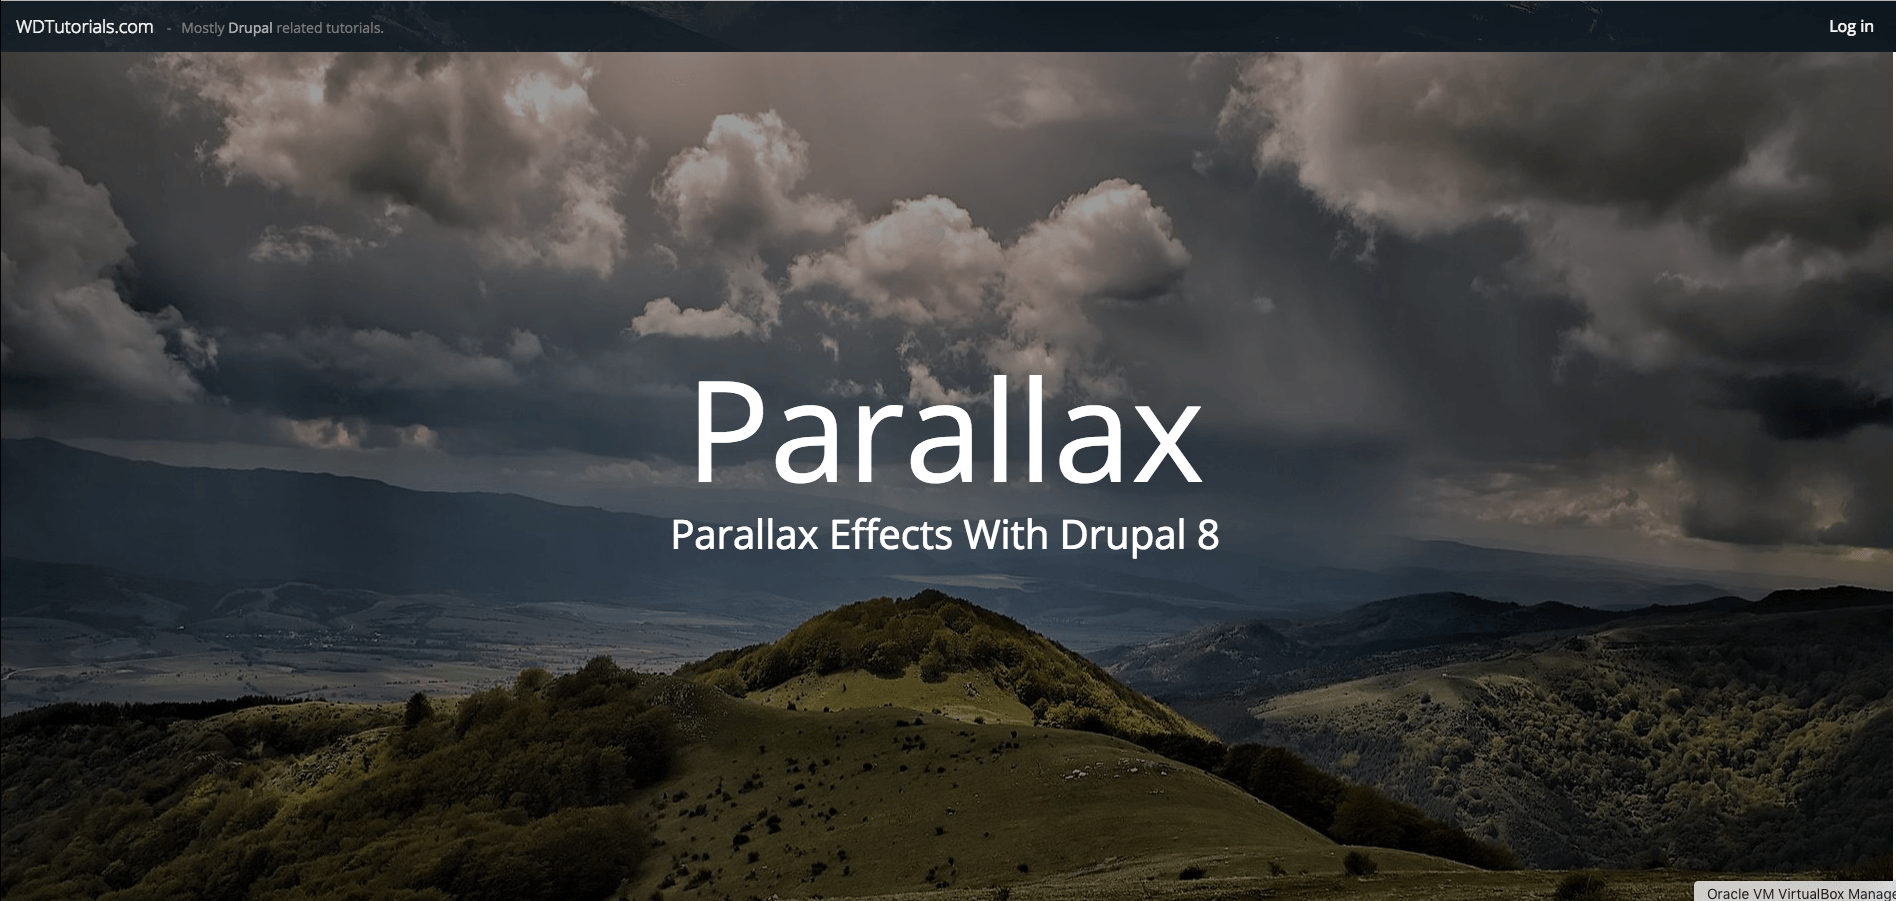 How to create parallax effects drupal 8 tutorial article video how to create parallax effects drupal 8 tutorial article video baditri Choice Image